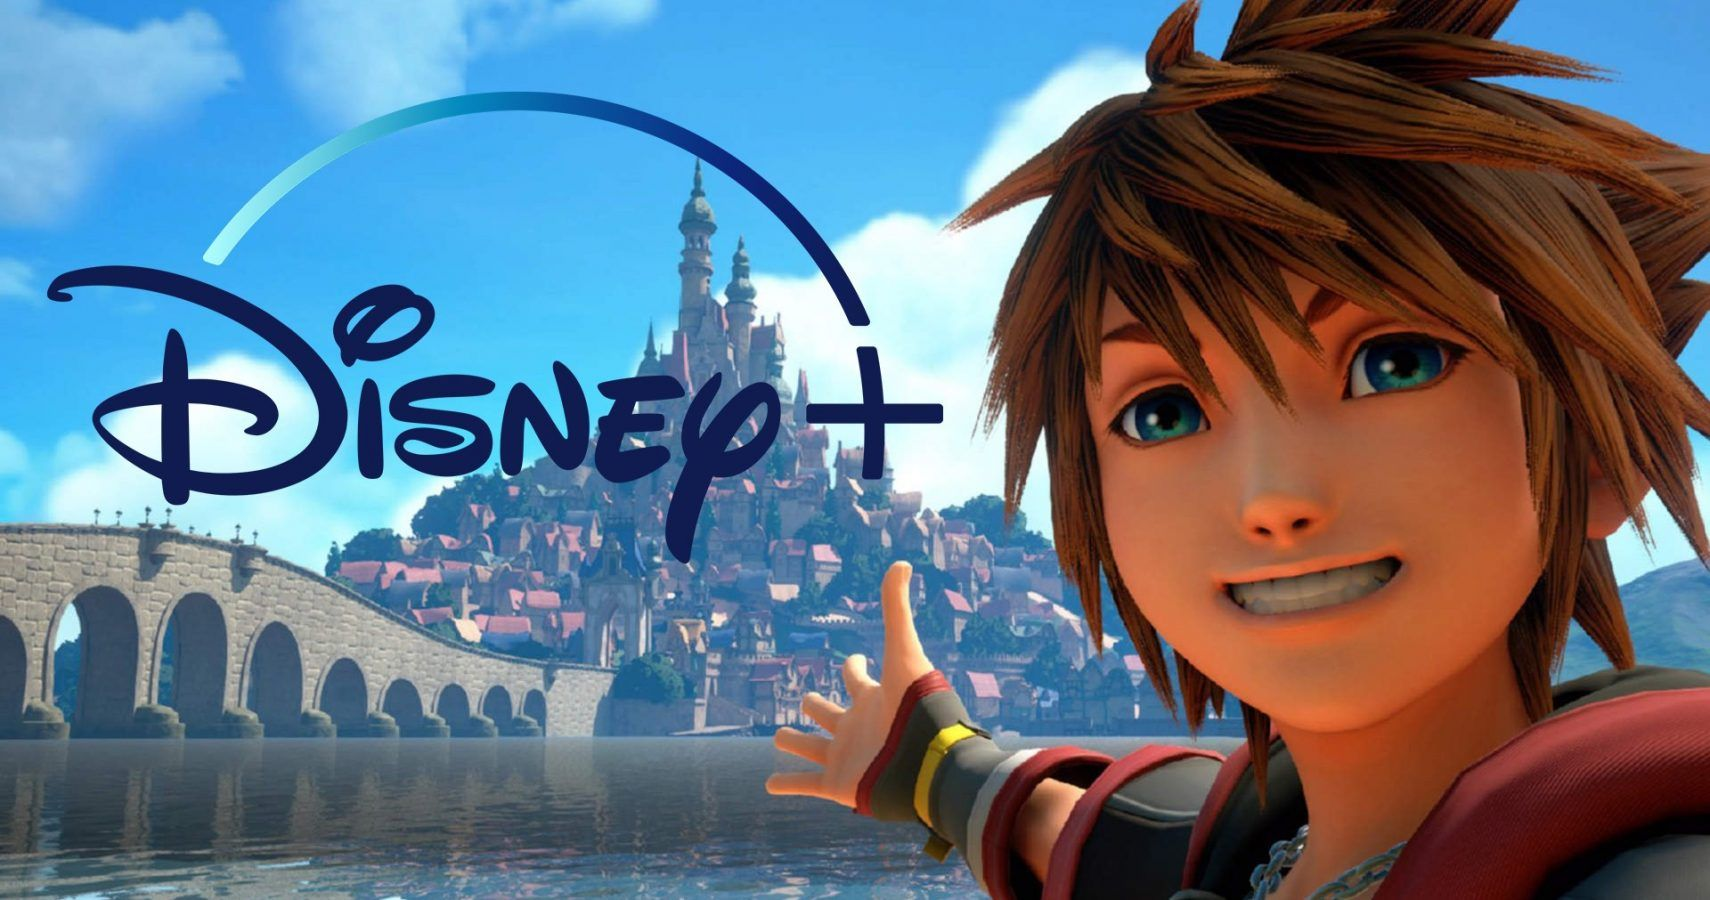 Kingdom Hearts 4 Release Date Delay due to Disney+ Animated Series